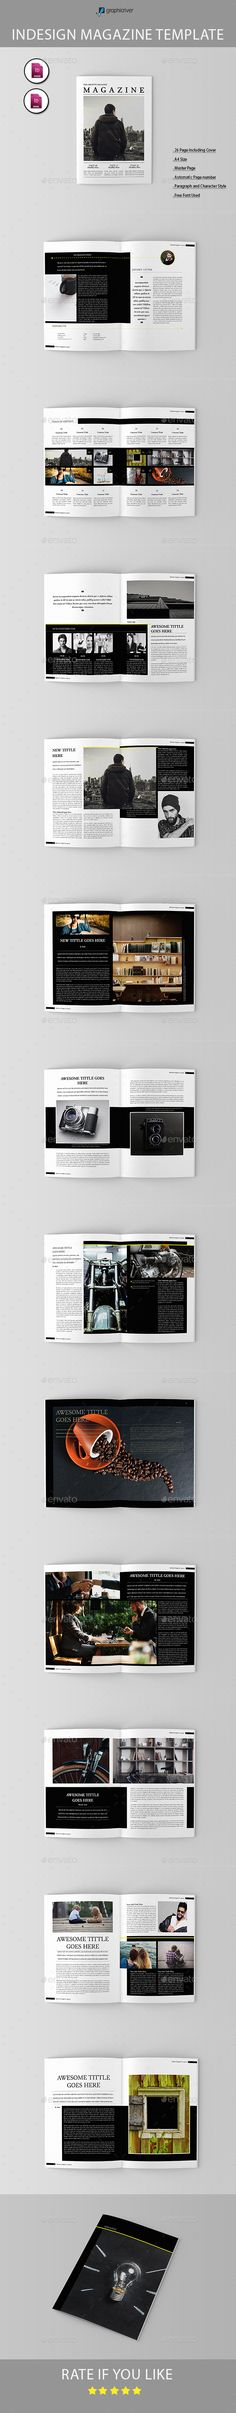 Magazine Template InDesign INDD - 26 Pages